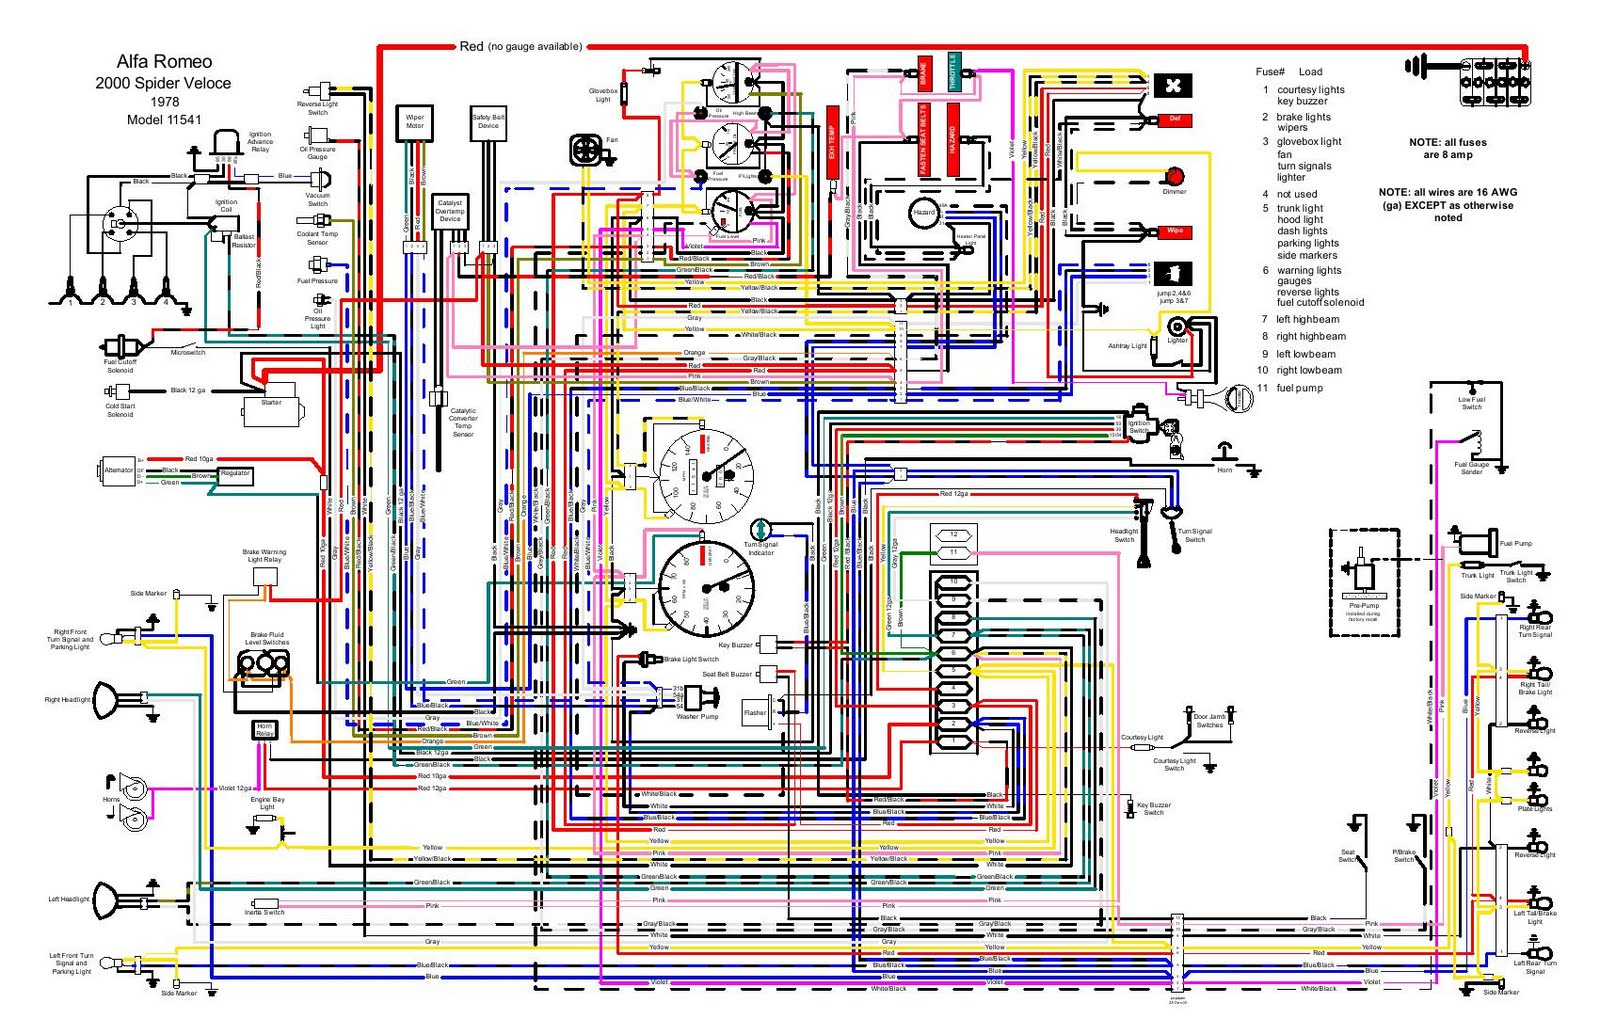 1978_Alfa_Romeo_2000_Spider_Wiring alfa romeo spider wiring diagram volvo amazon wiring diagram volvo amazon wiring diagram at fashall.co